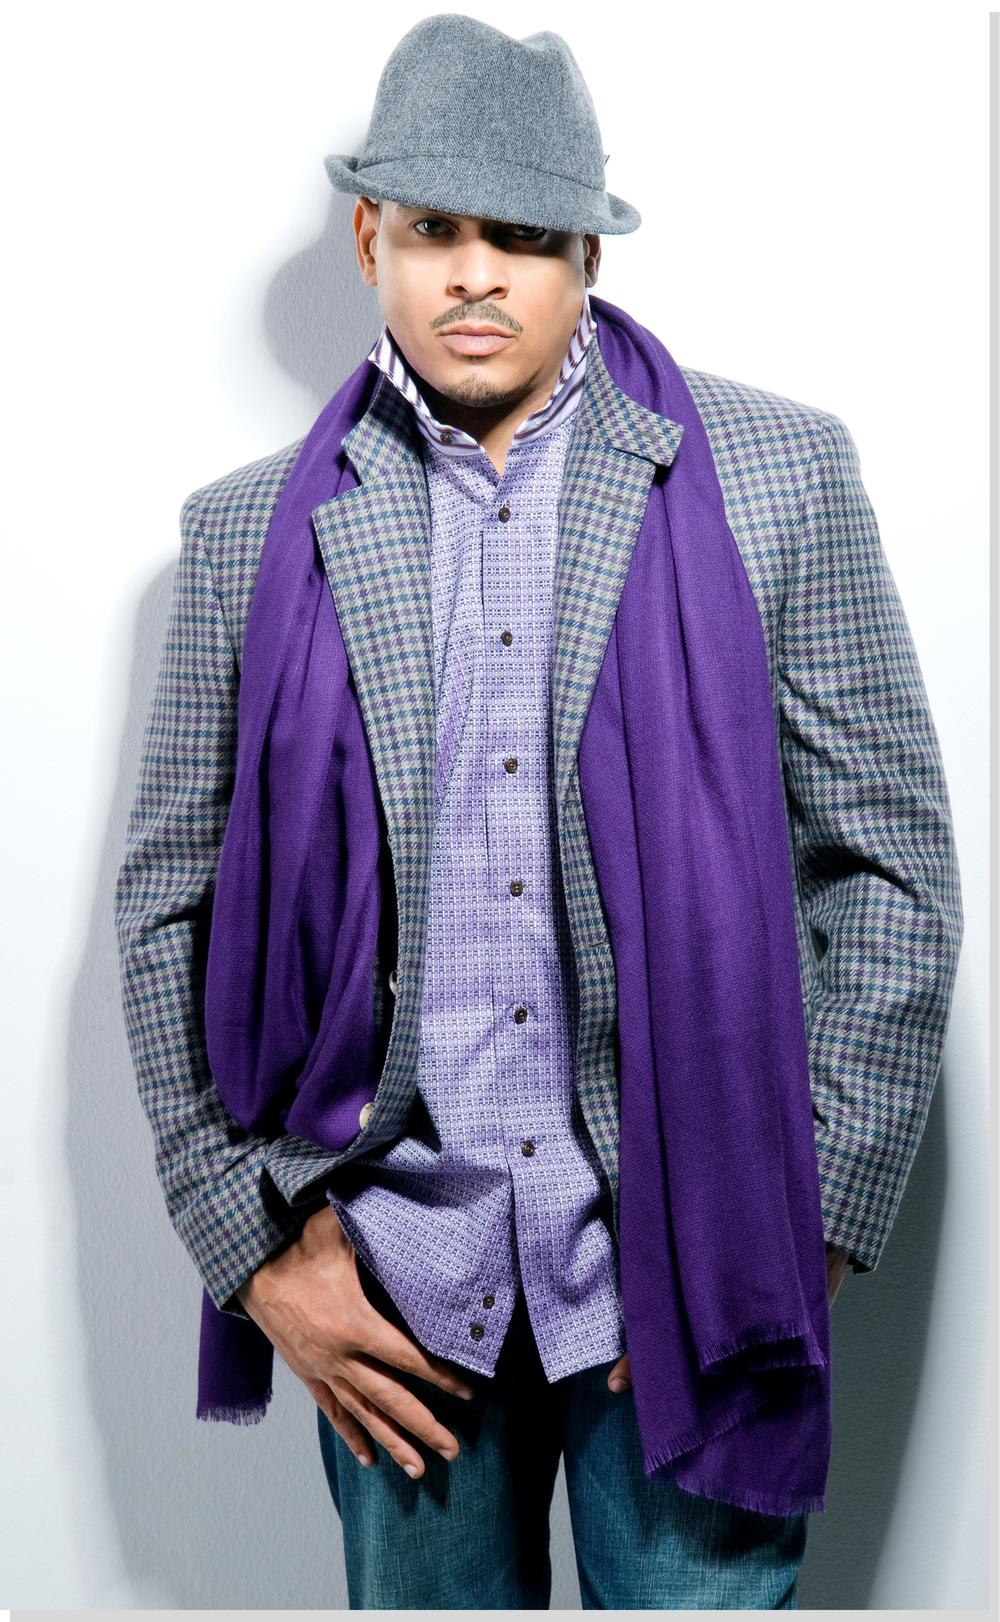 Christopher Williams wearing a casual suit and wearing purple.jpg